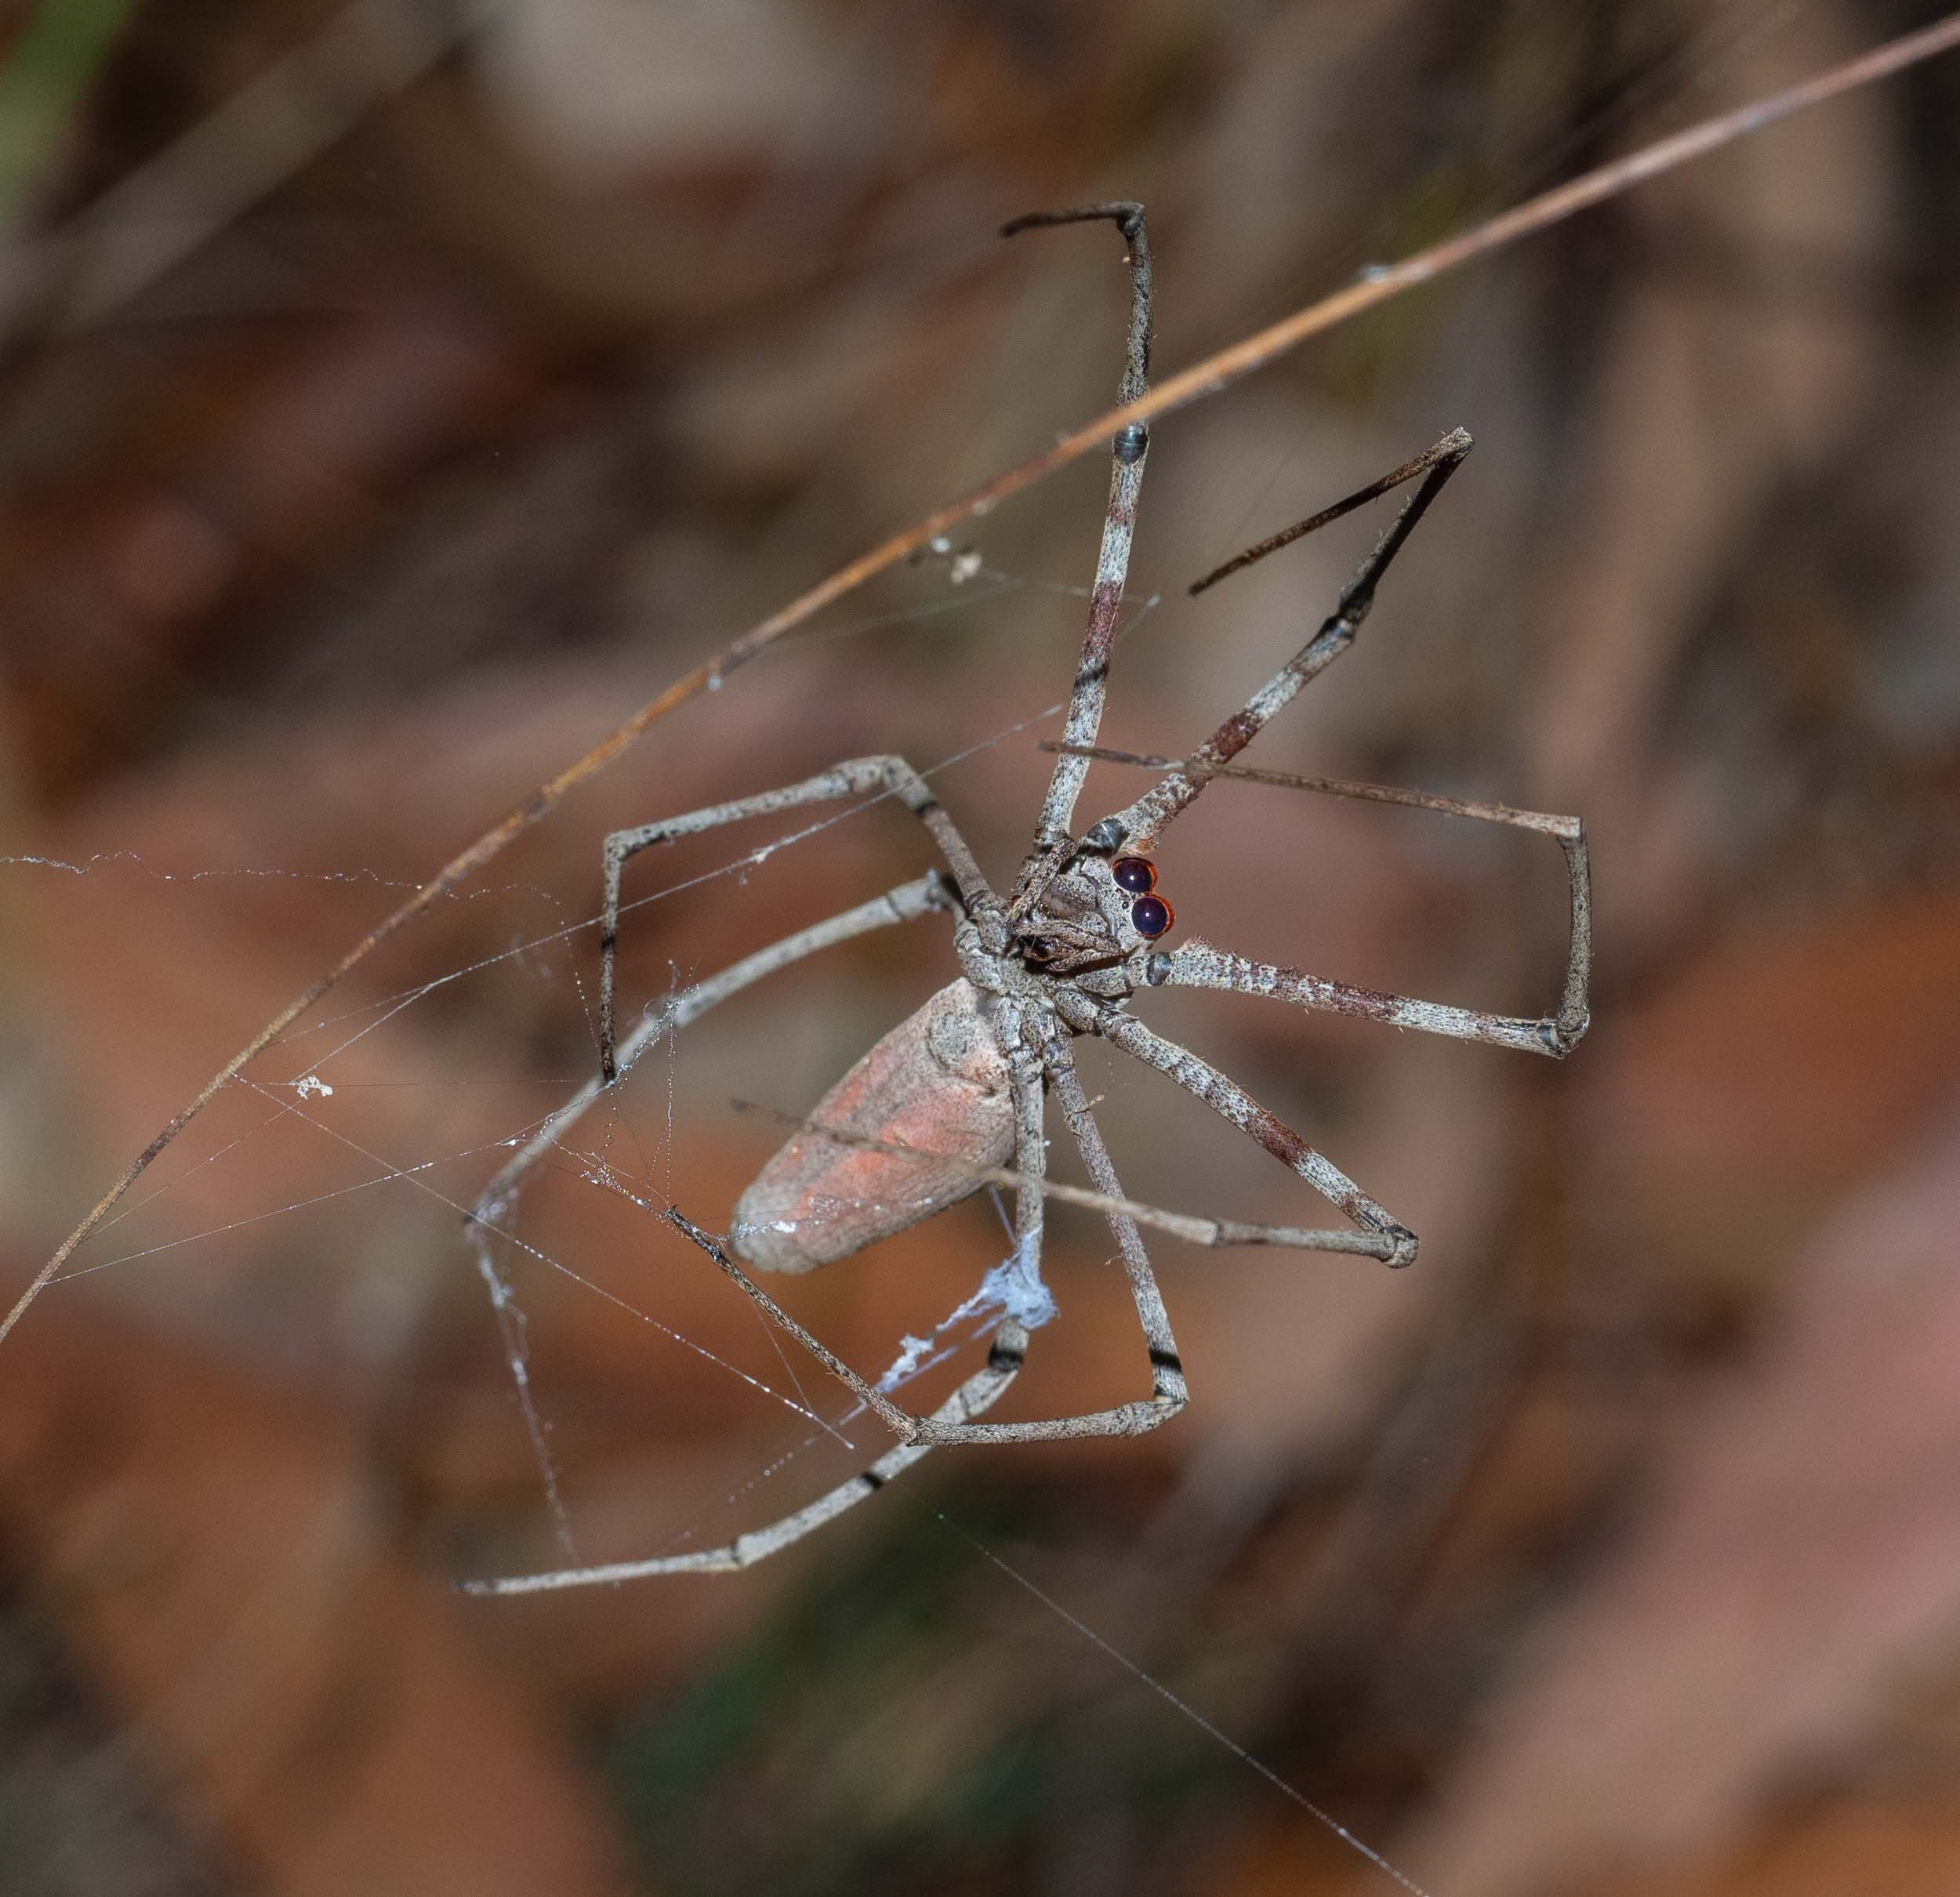 The remains of the Netcaster's net can be seen above her left-hand hind leg.